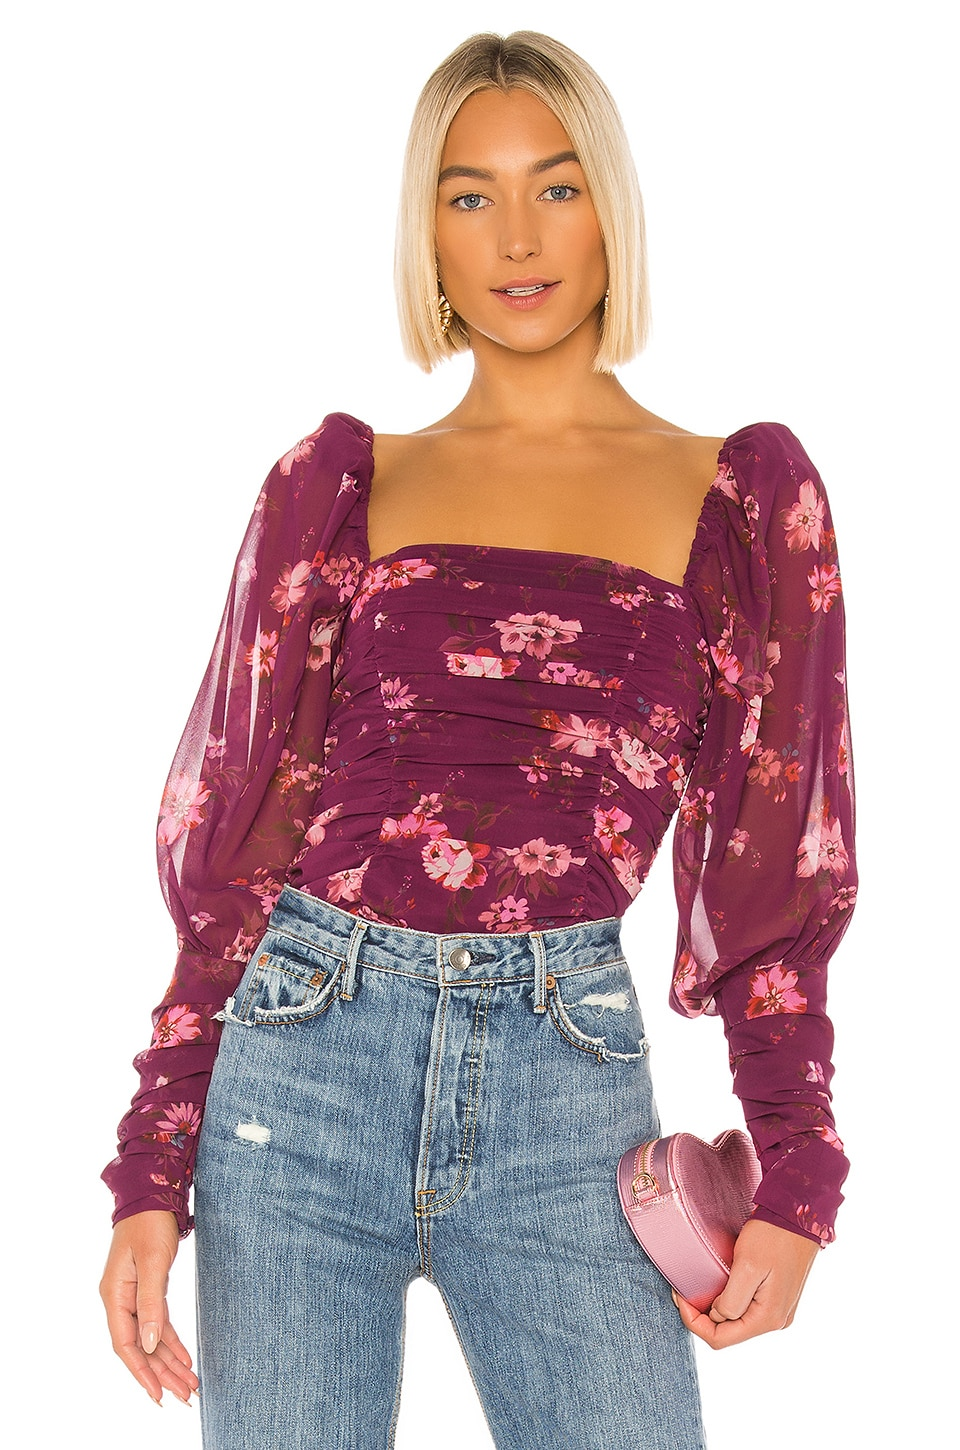 LPA Marta Top in Jolene Floral